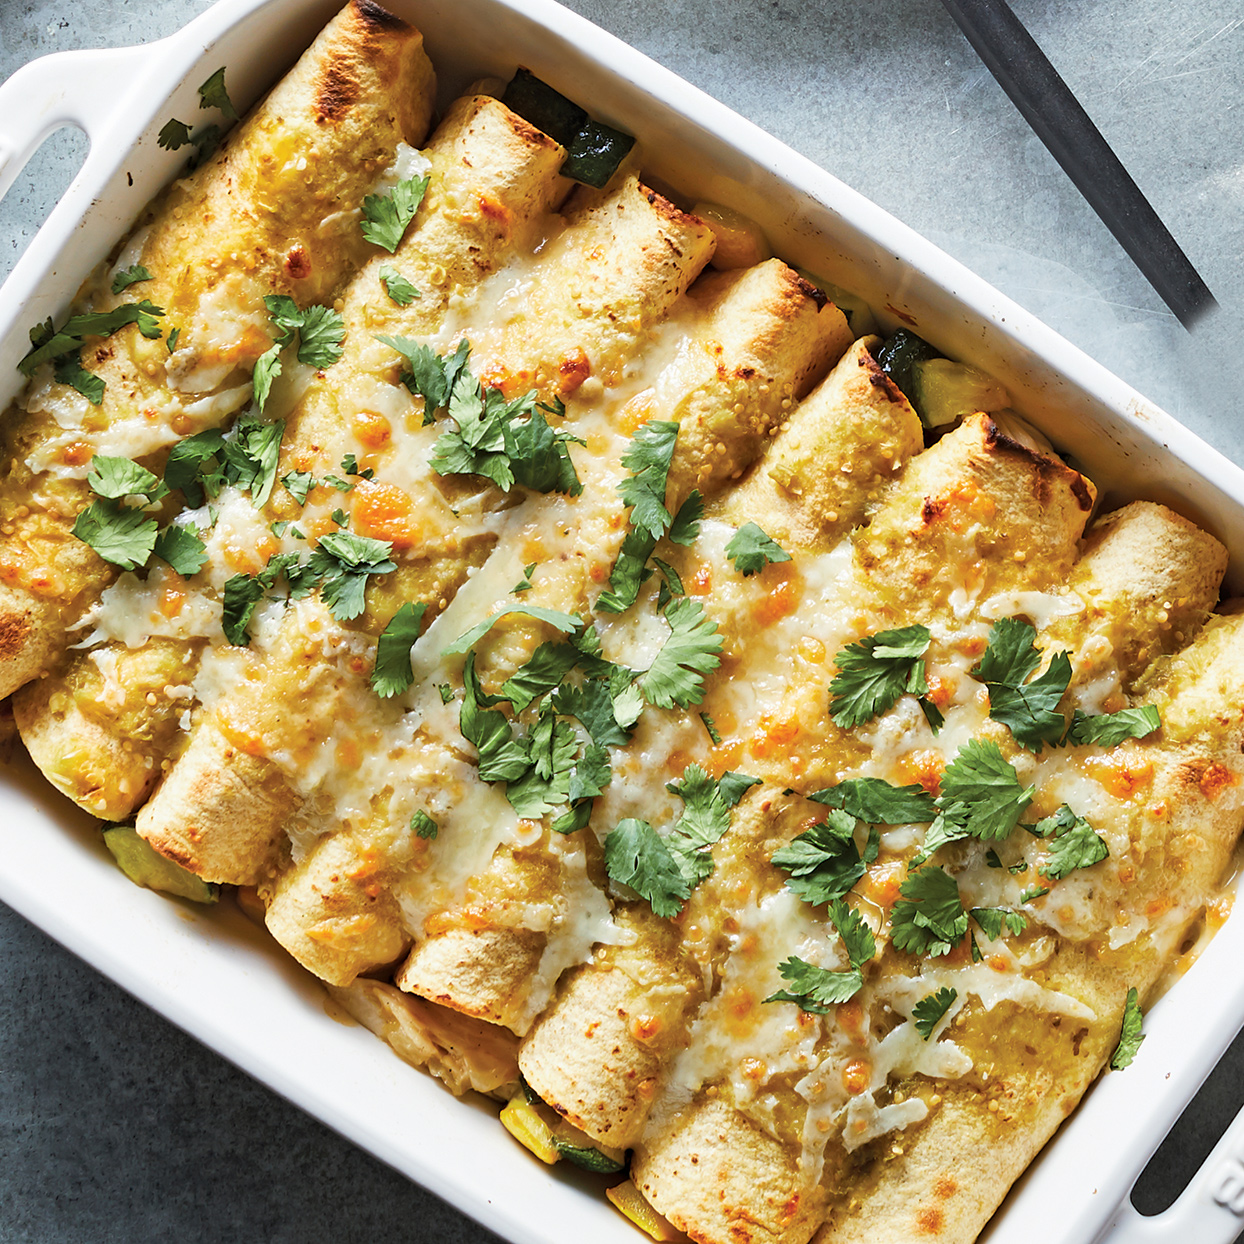 These chicken enchiladas are great for using up any veggies you have lingering in your fridge. Our chicken enchilada recipe calls for zucchini, squash and onion, but you could easily swap in spinach, onions or potatoes. Source: 400 Calorie Recipes